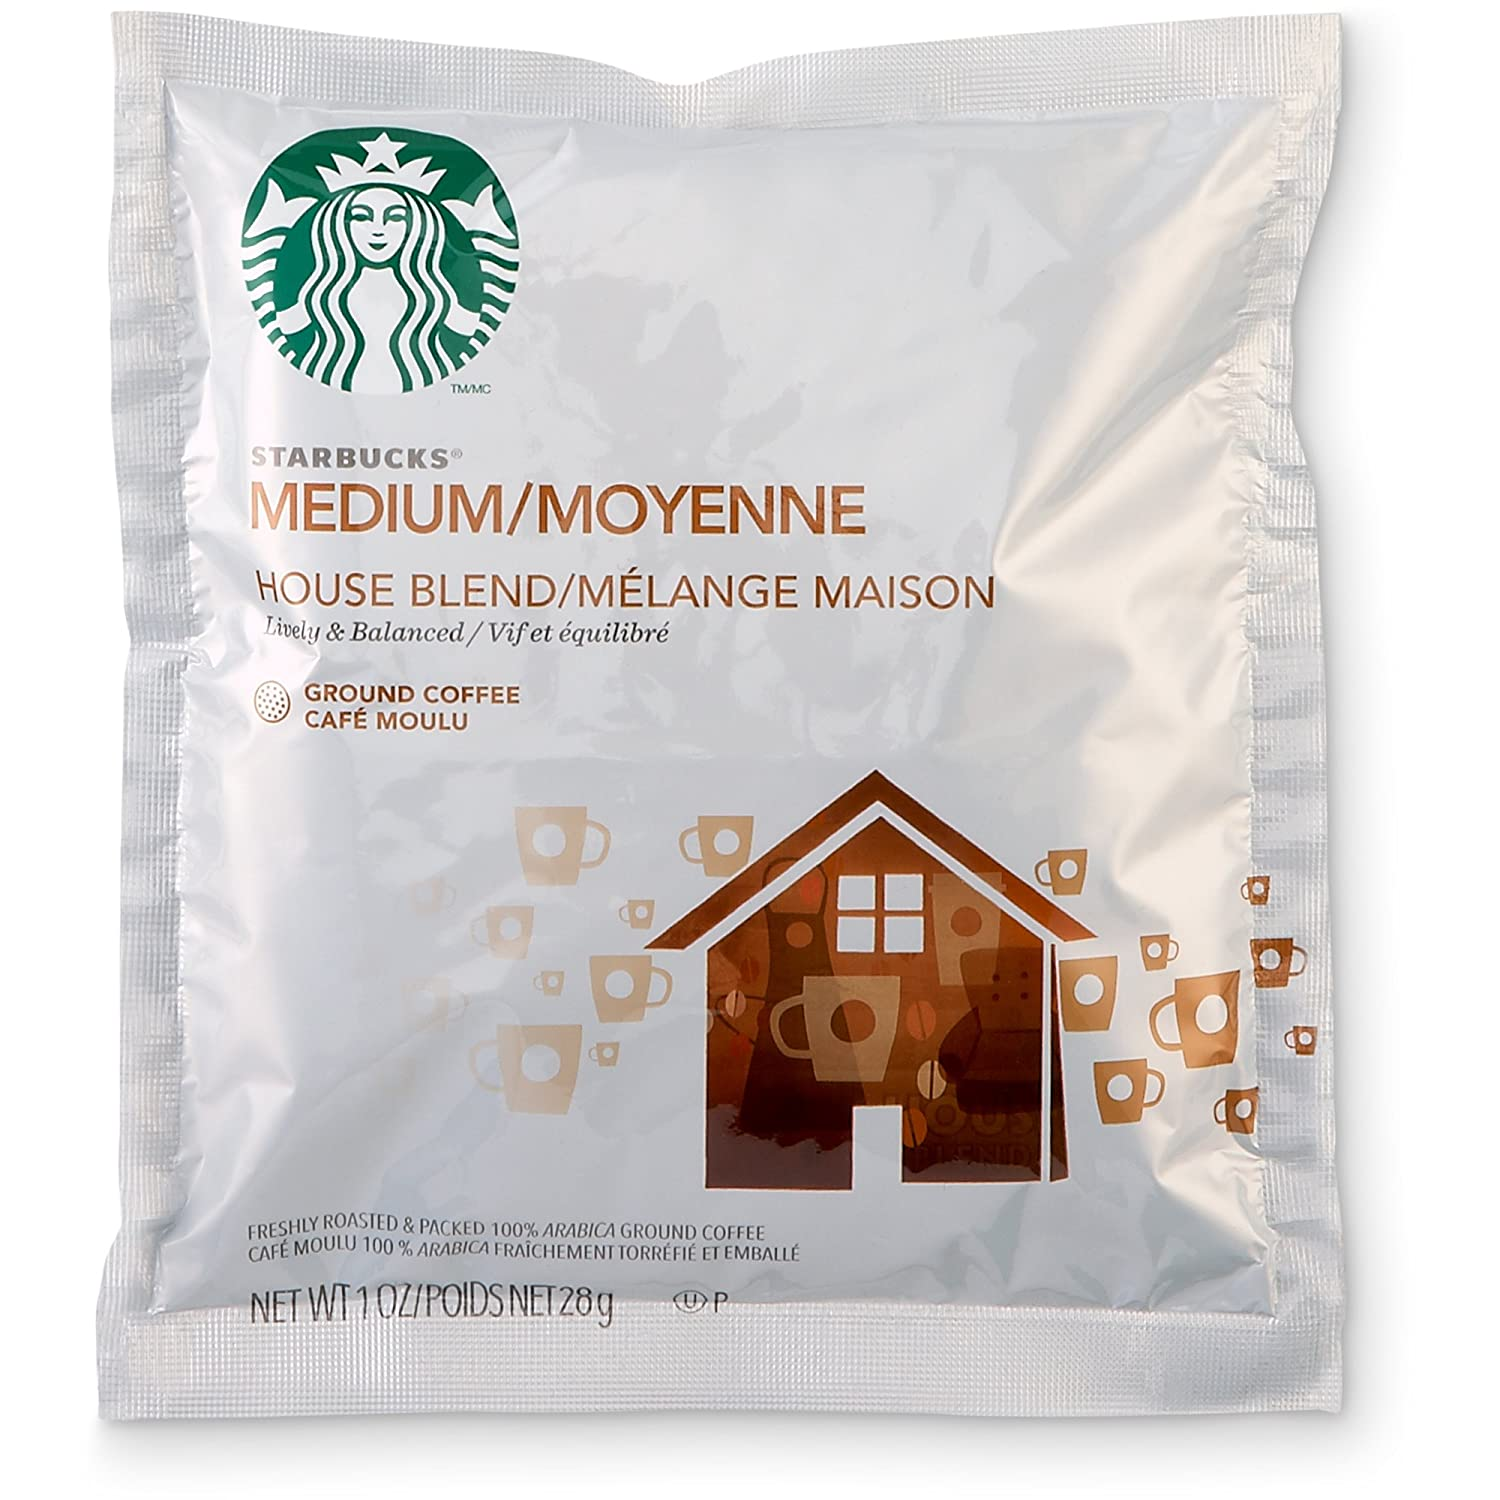 starbucks coffee mis review Before buying starbucks yukon blend organic whole bean coffee, check out our extensively researched review to help you decide if this is the one for you.